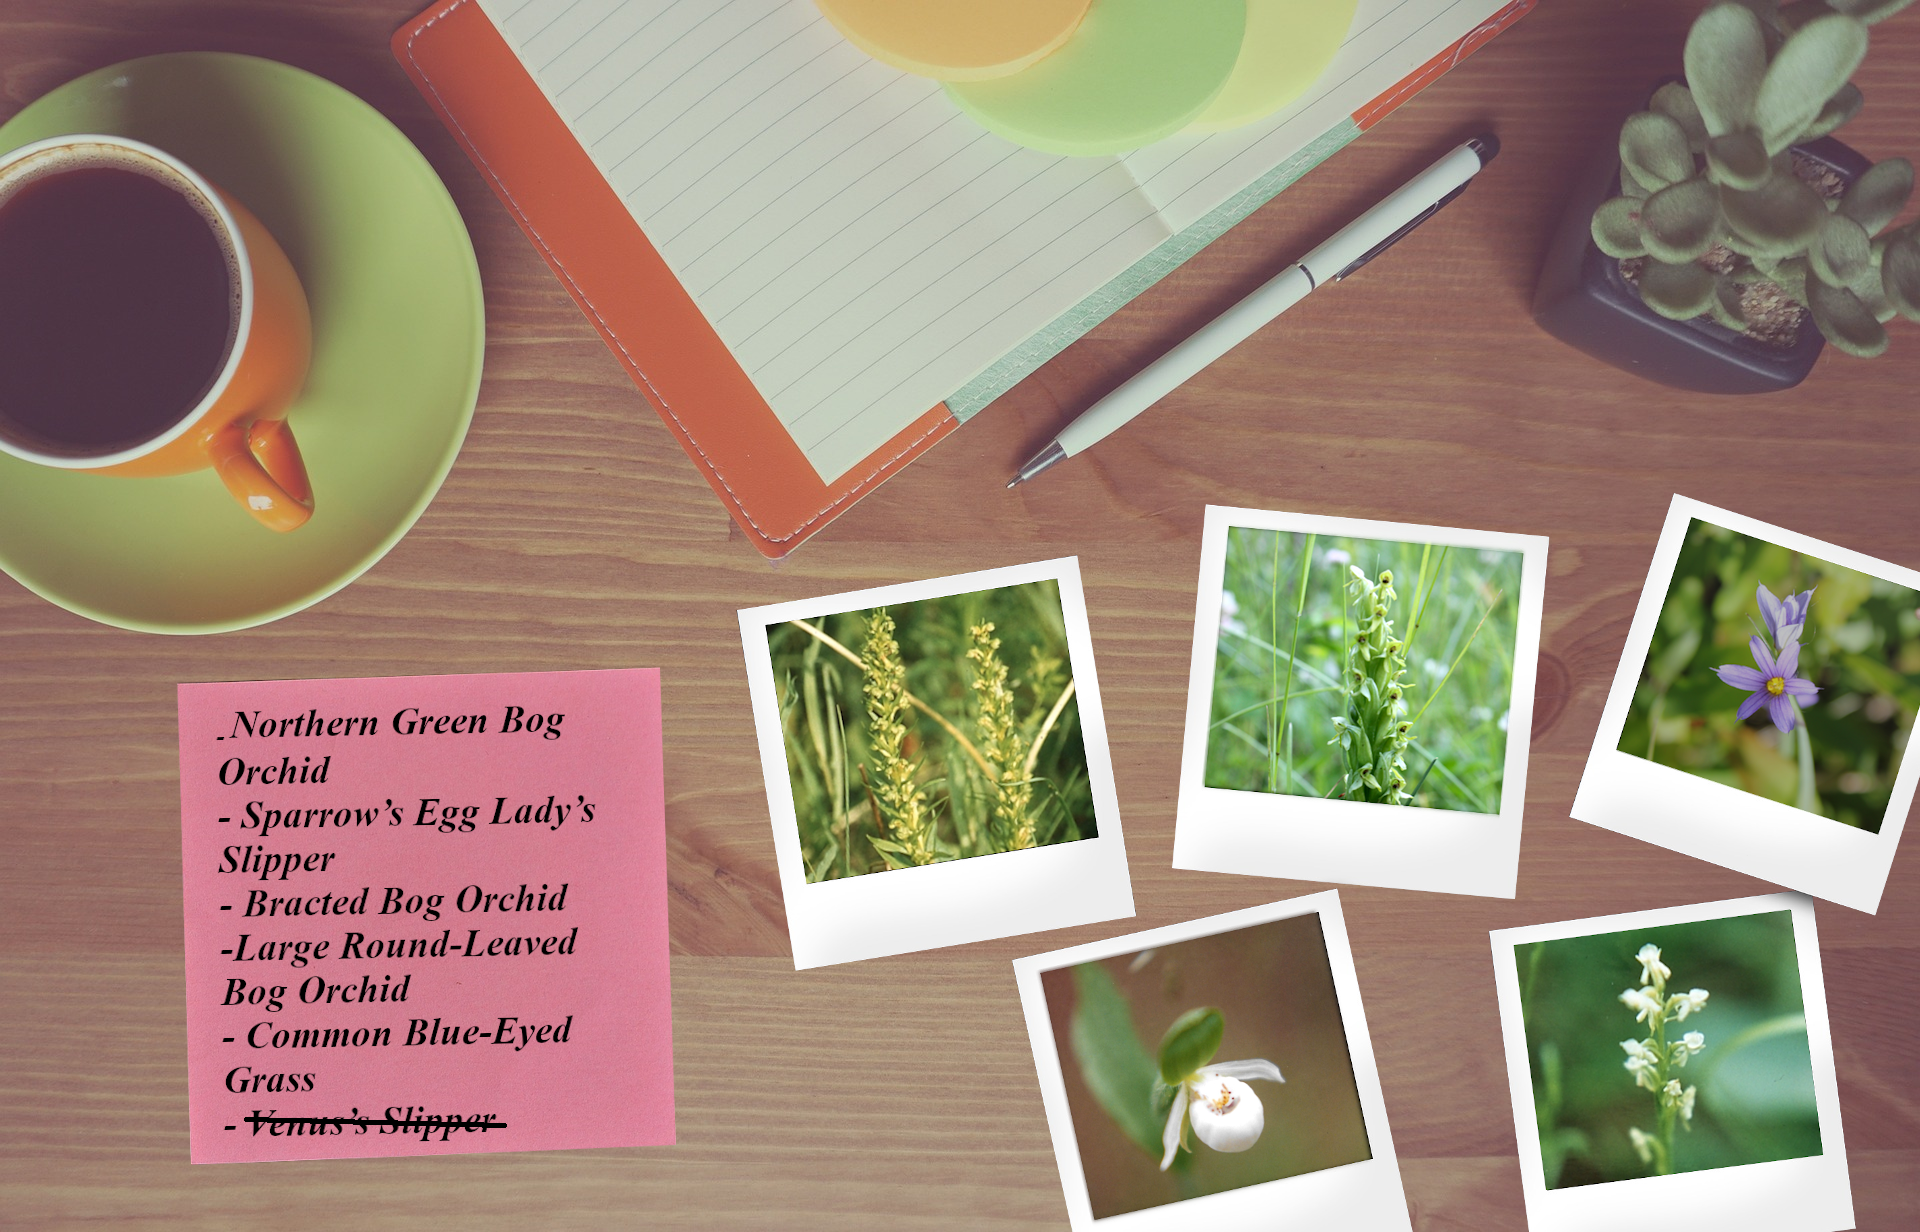 A desk with a small potted plant, a few photos of flowers and a note listing names